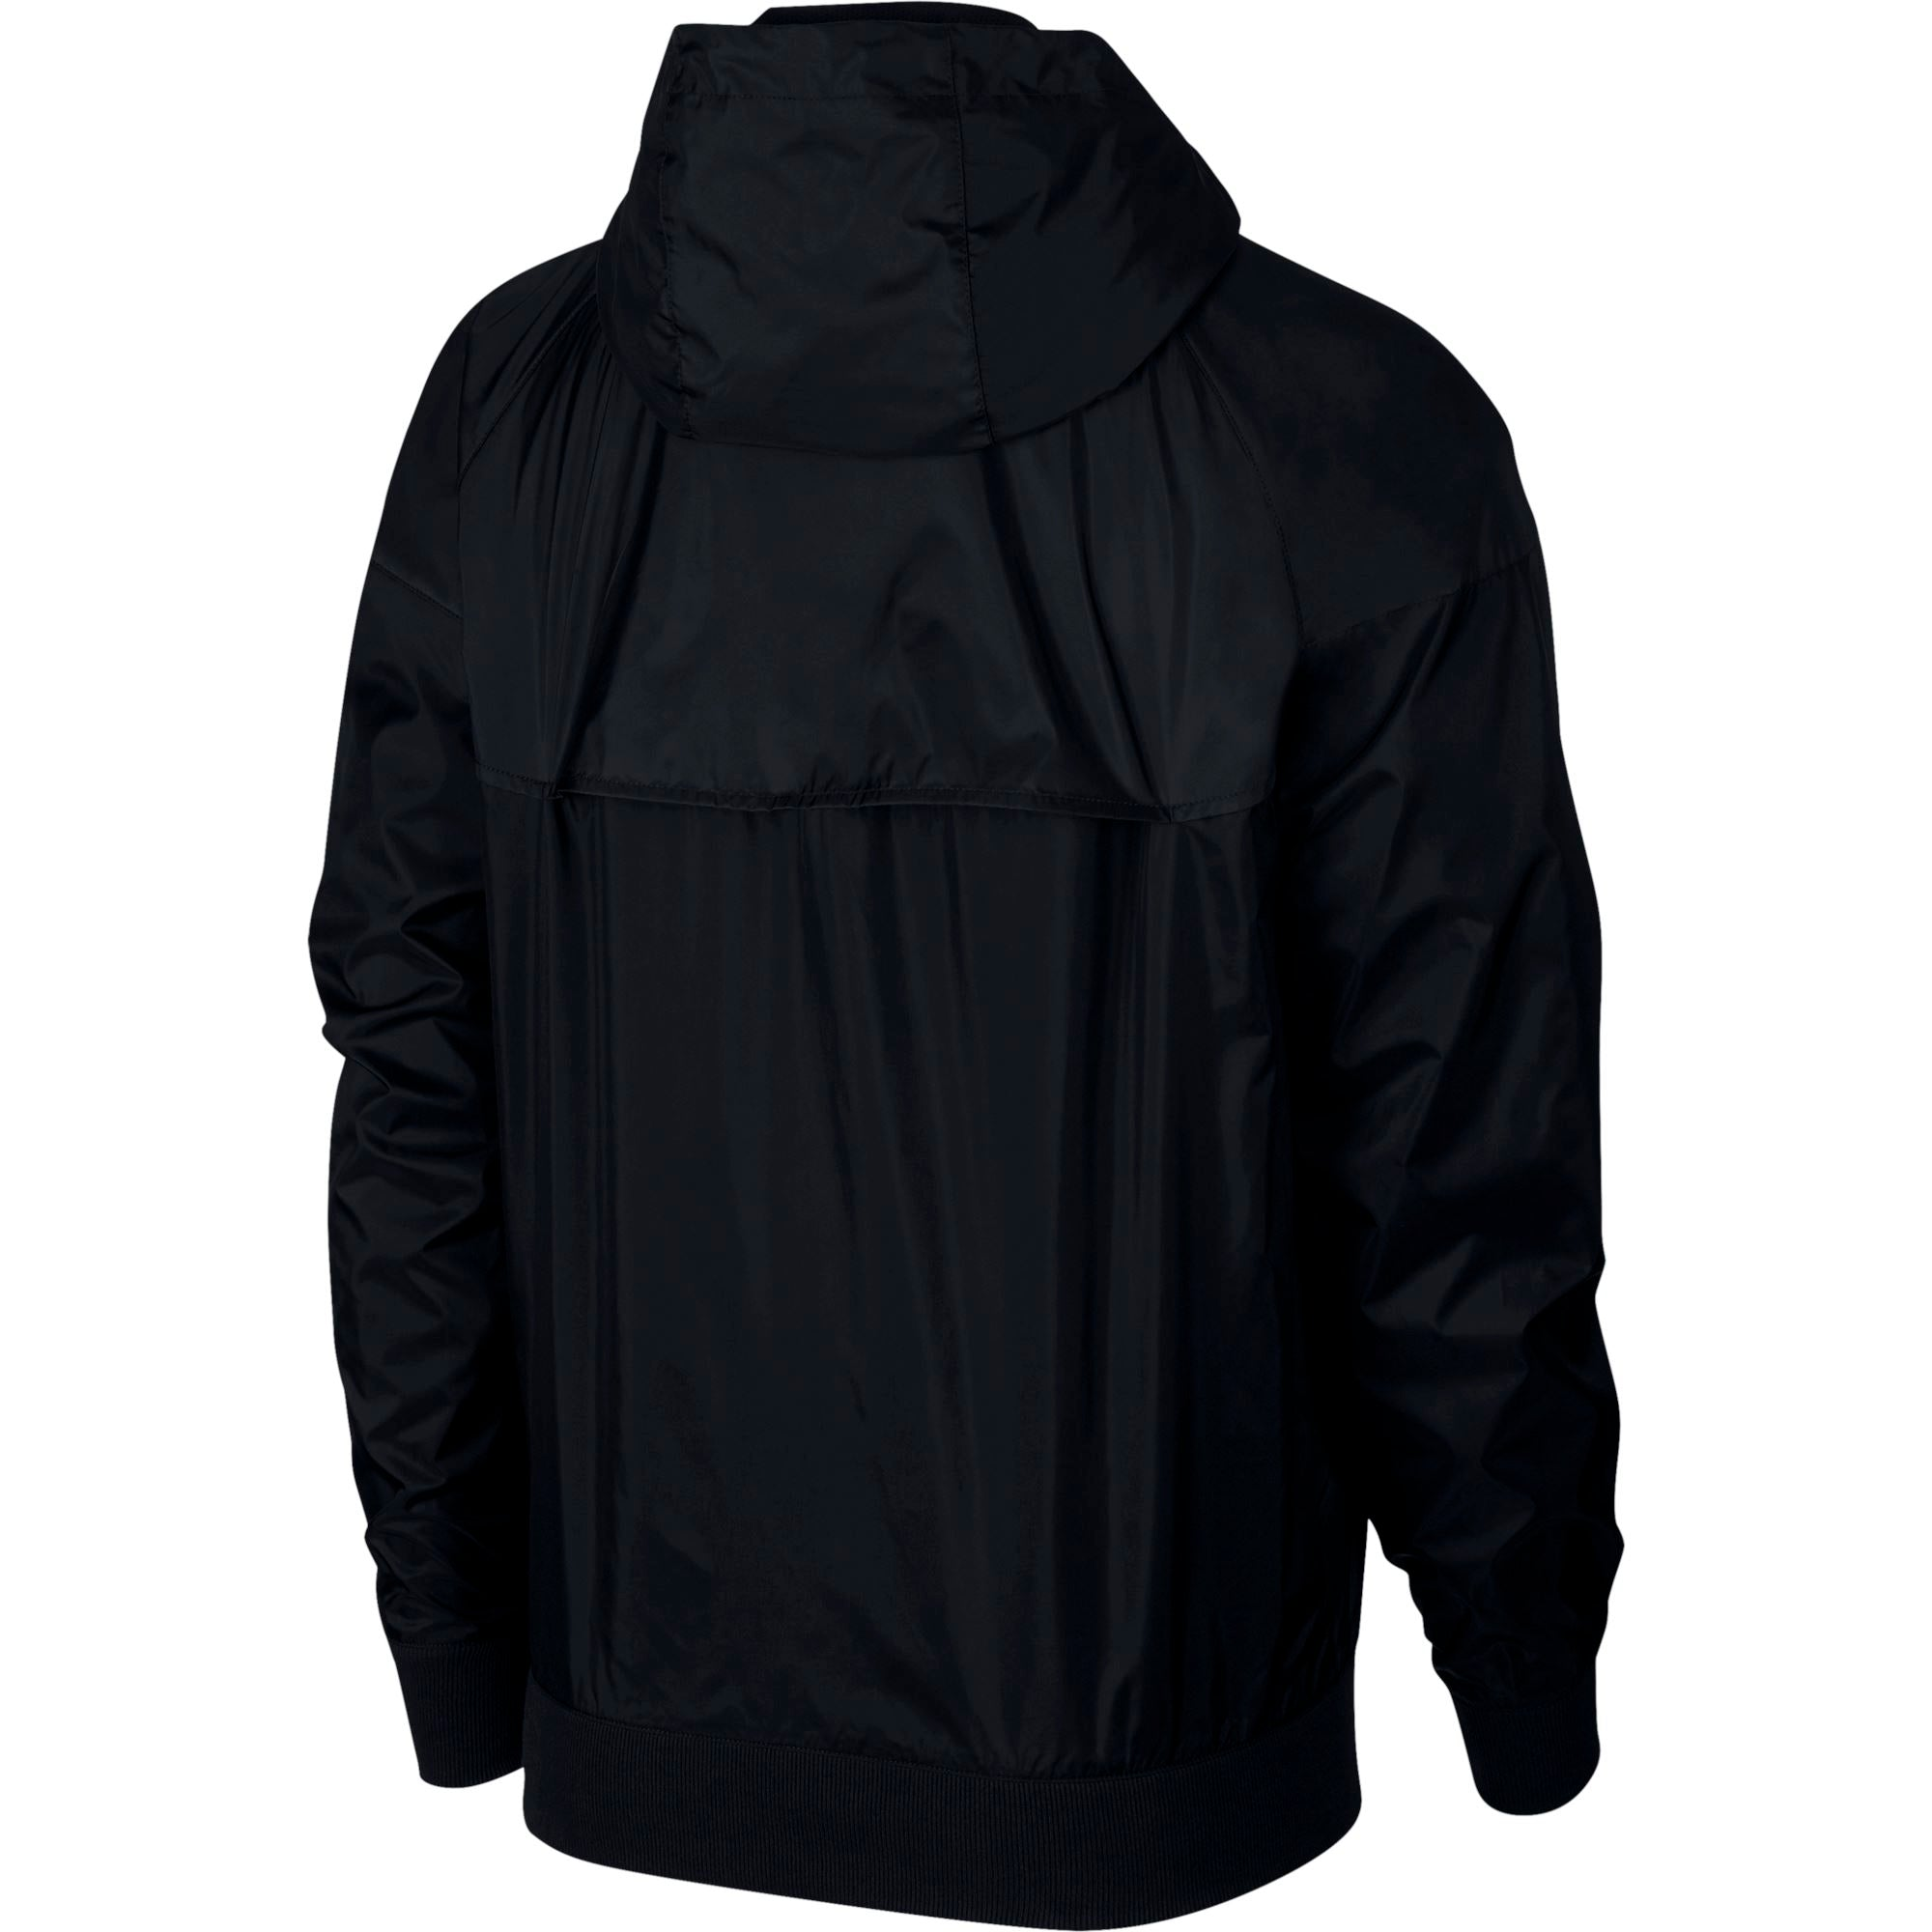 Nike Men's Sportswear Windrunner - Black/Black/Black/Sail SP-ApparelJackets-Mens Nike